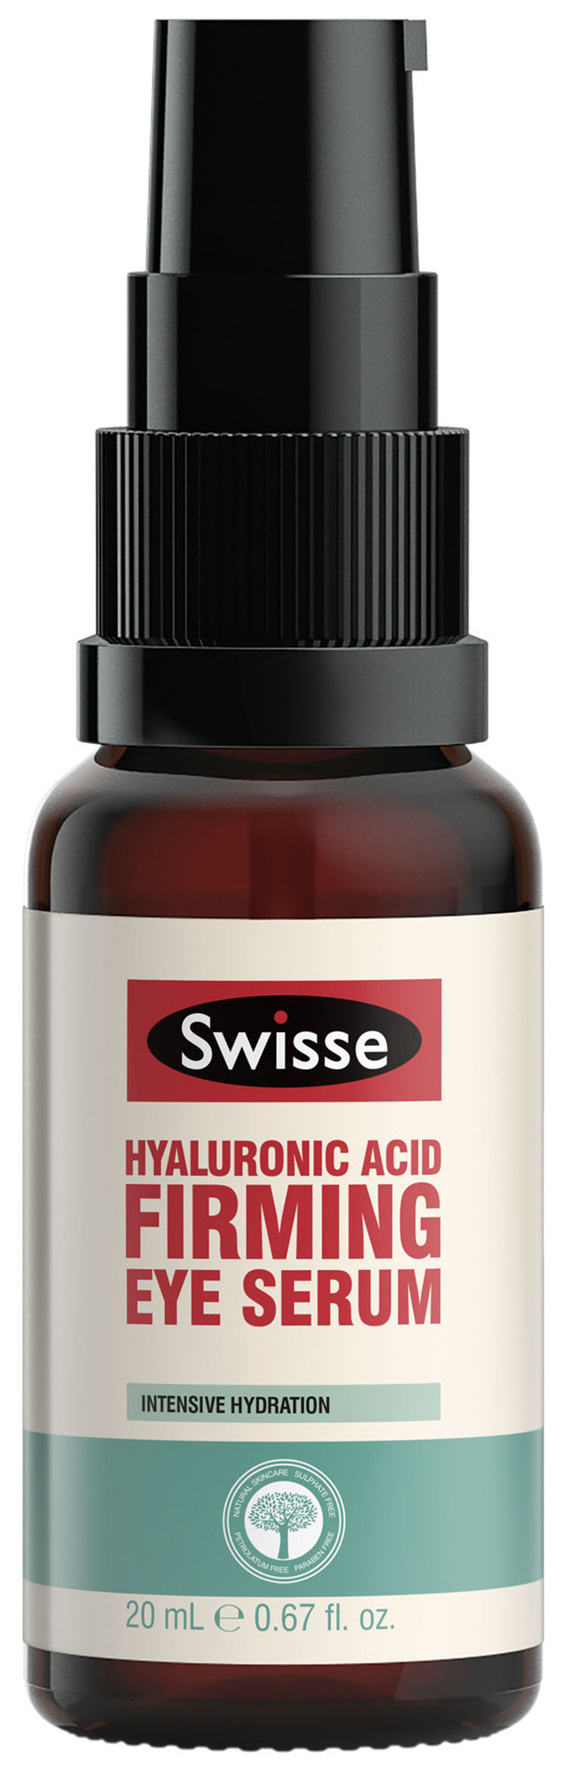 Swisse Hyaluronic Acid Firming Eye Serum 20mL